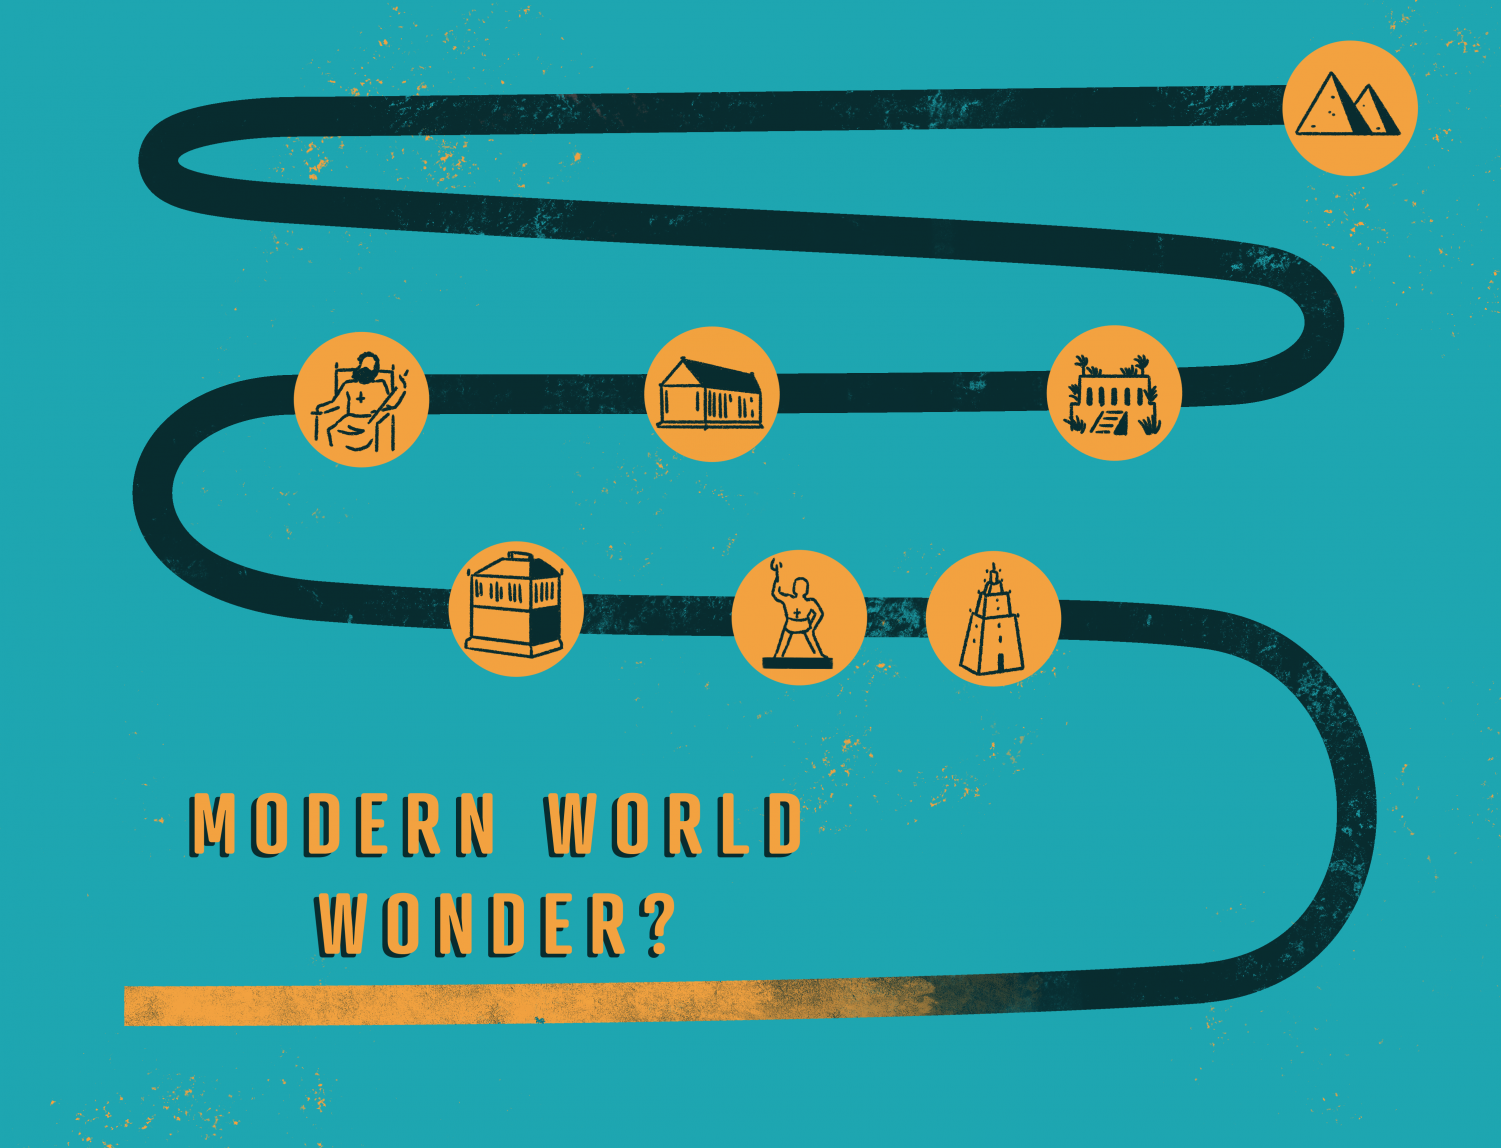 OPINION: Ancient wonders have a lack of resonance in modern